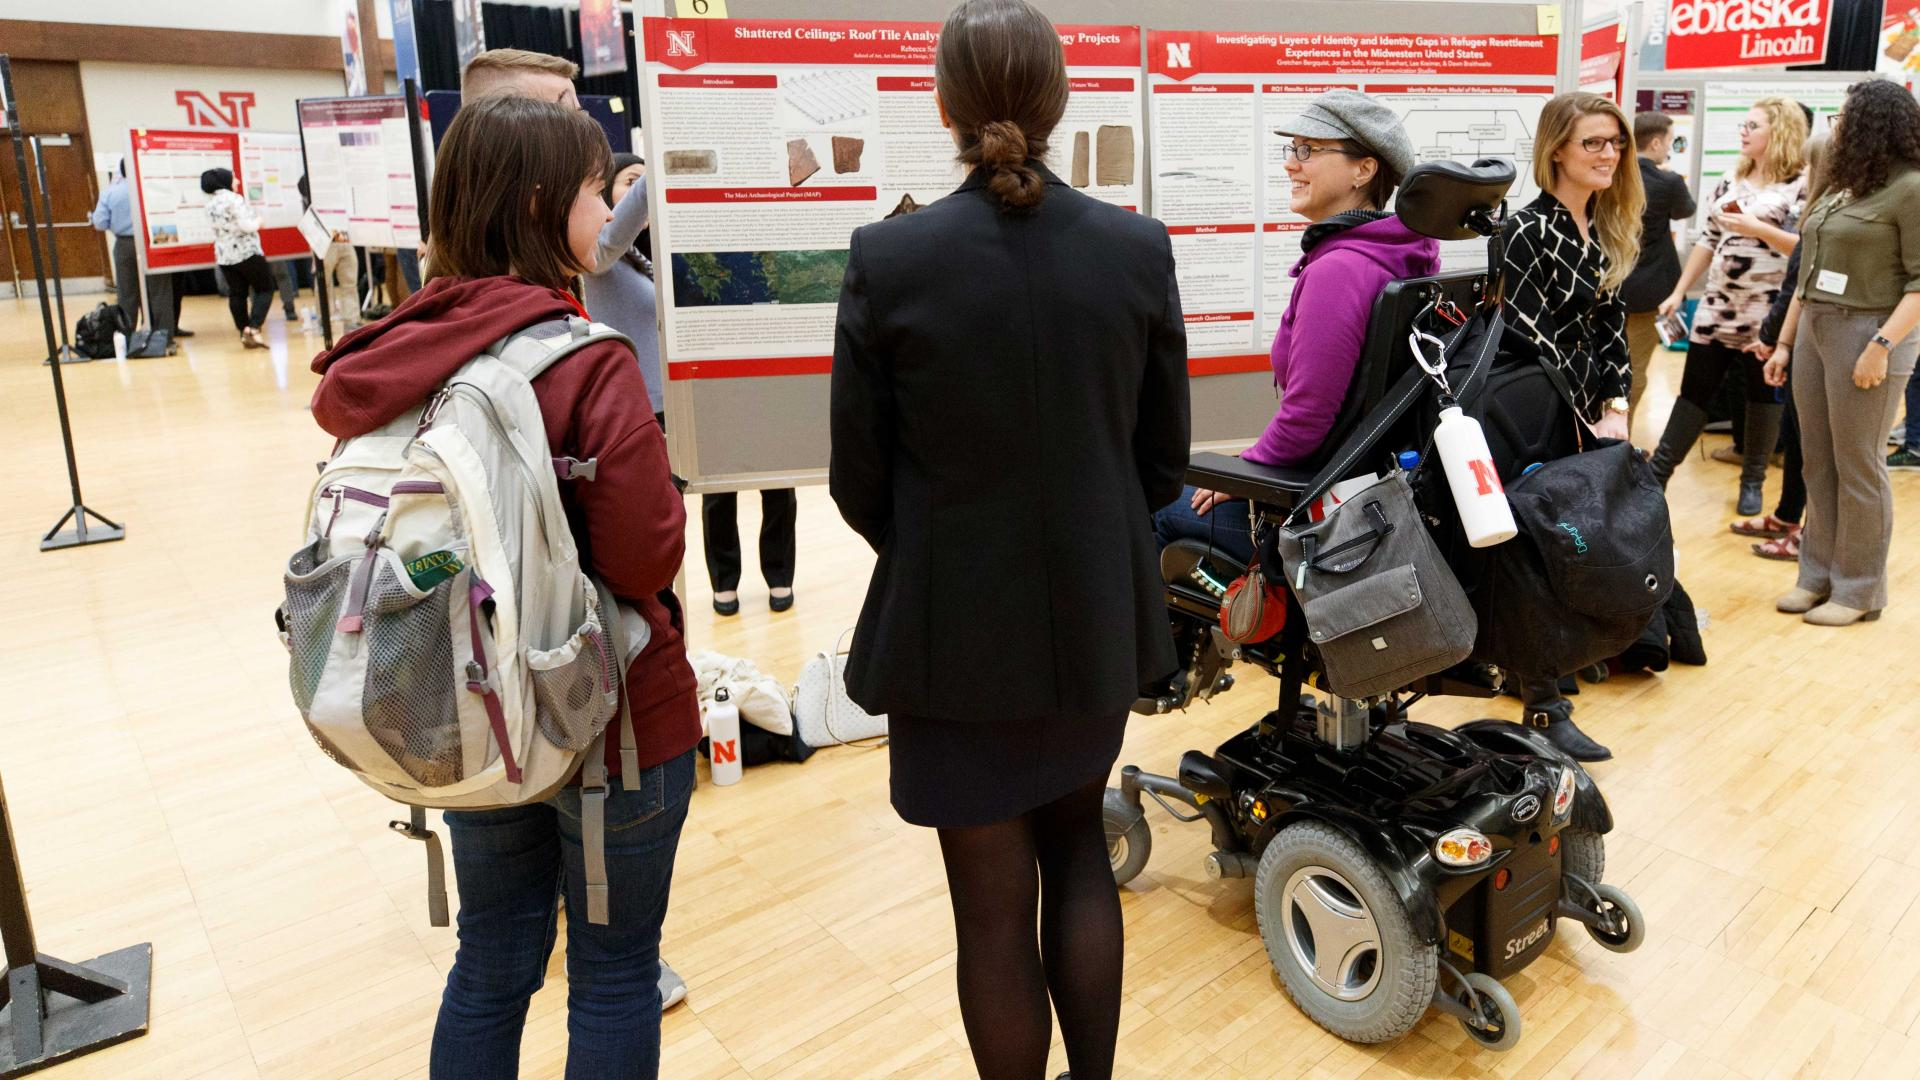 Two students standing and one student in a wheelchair analyze research posters